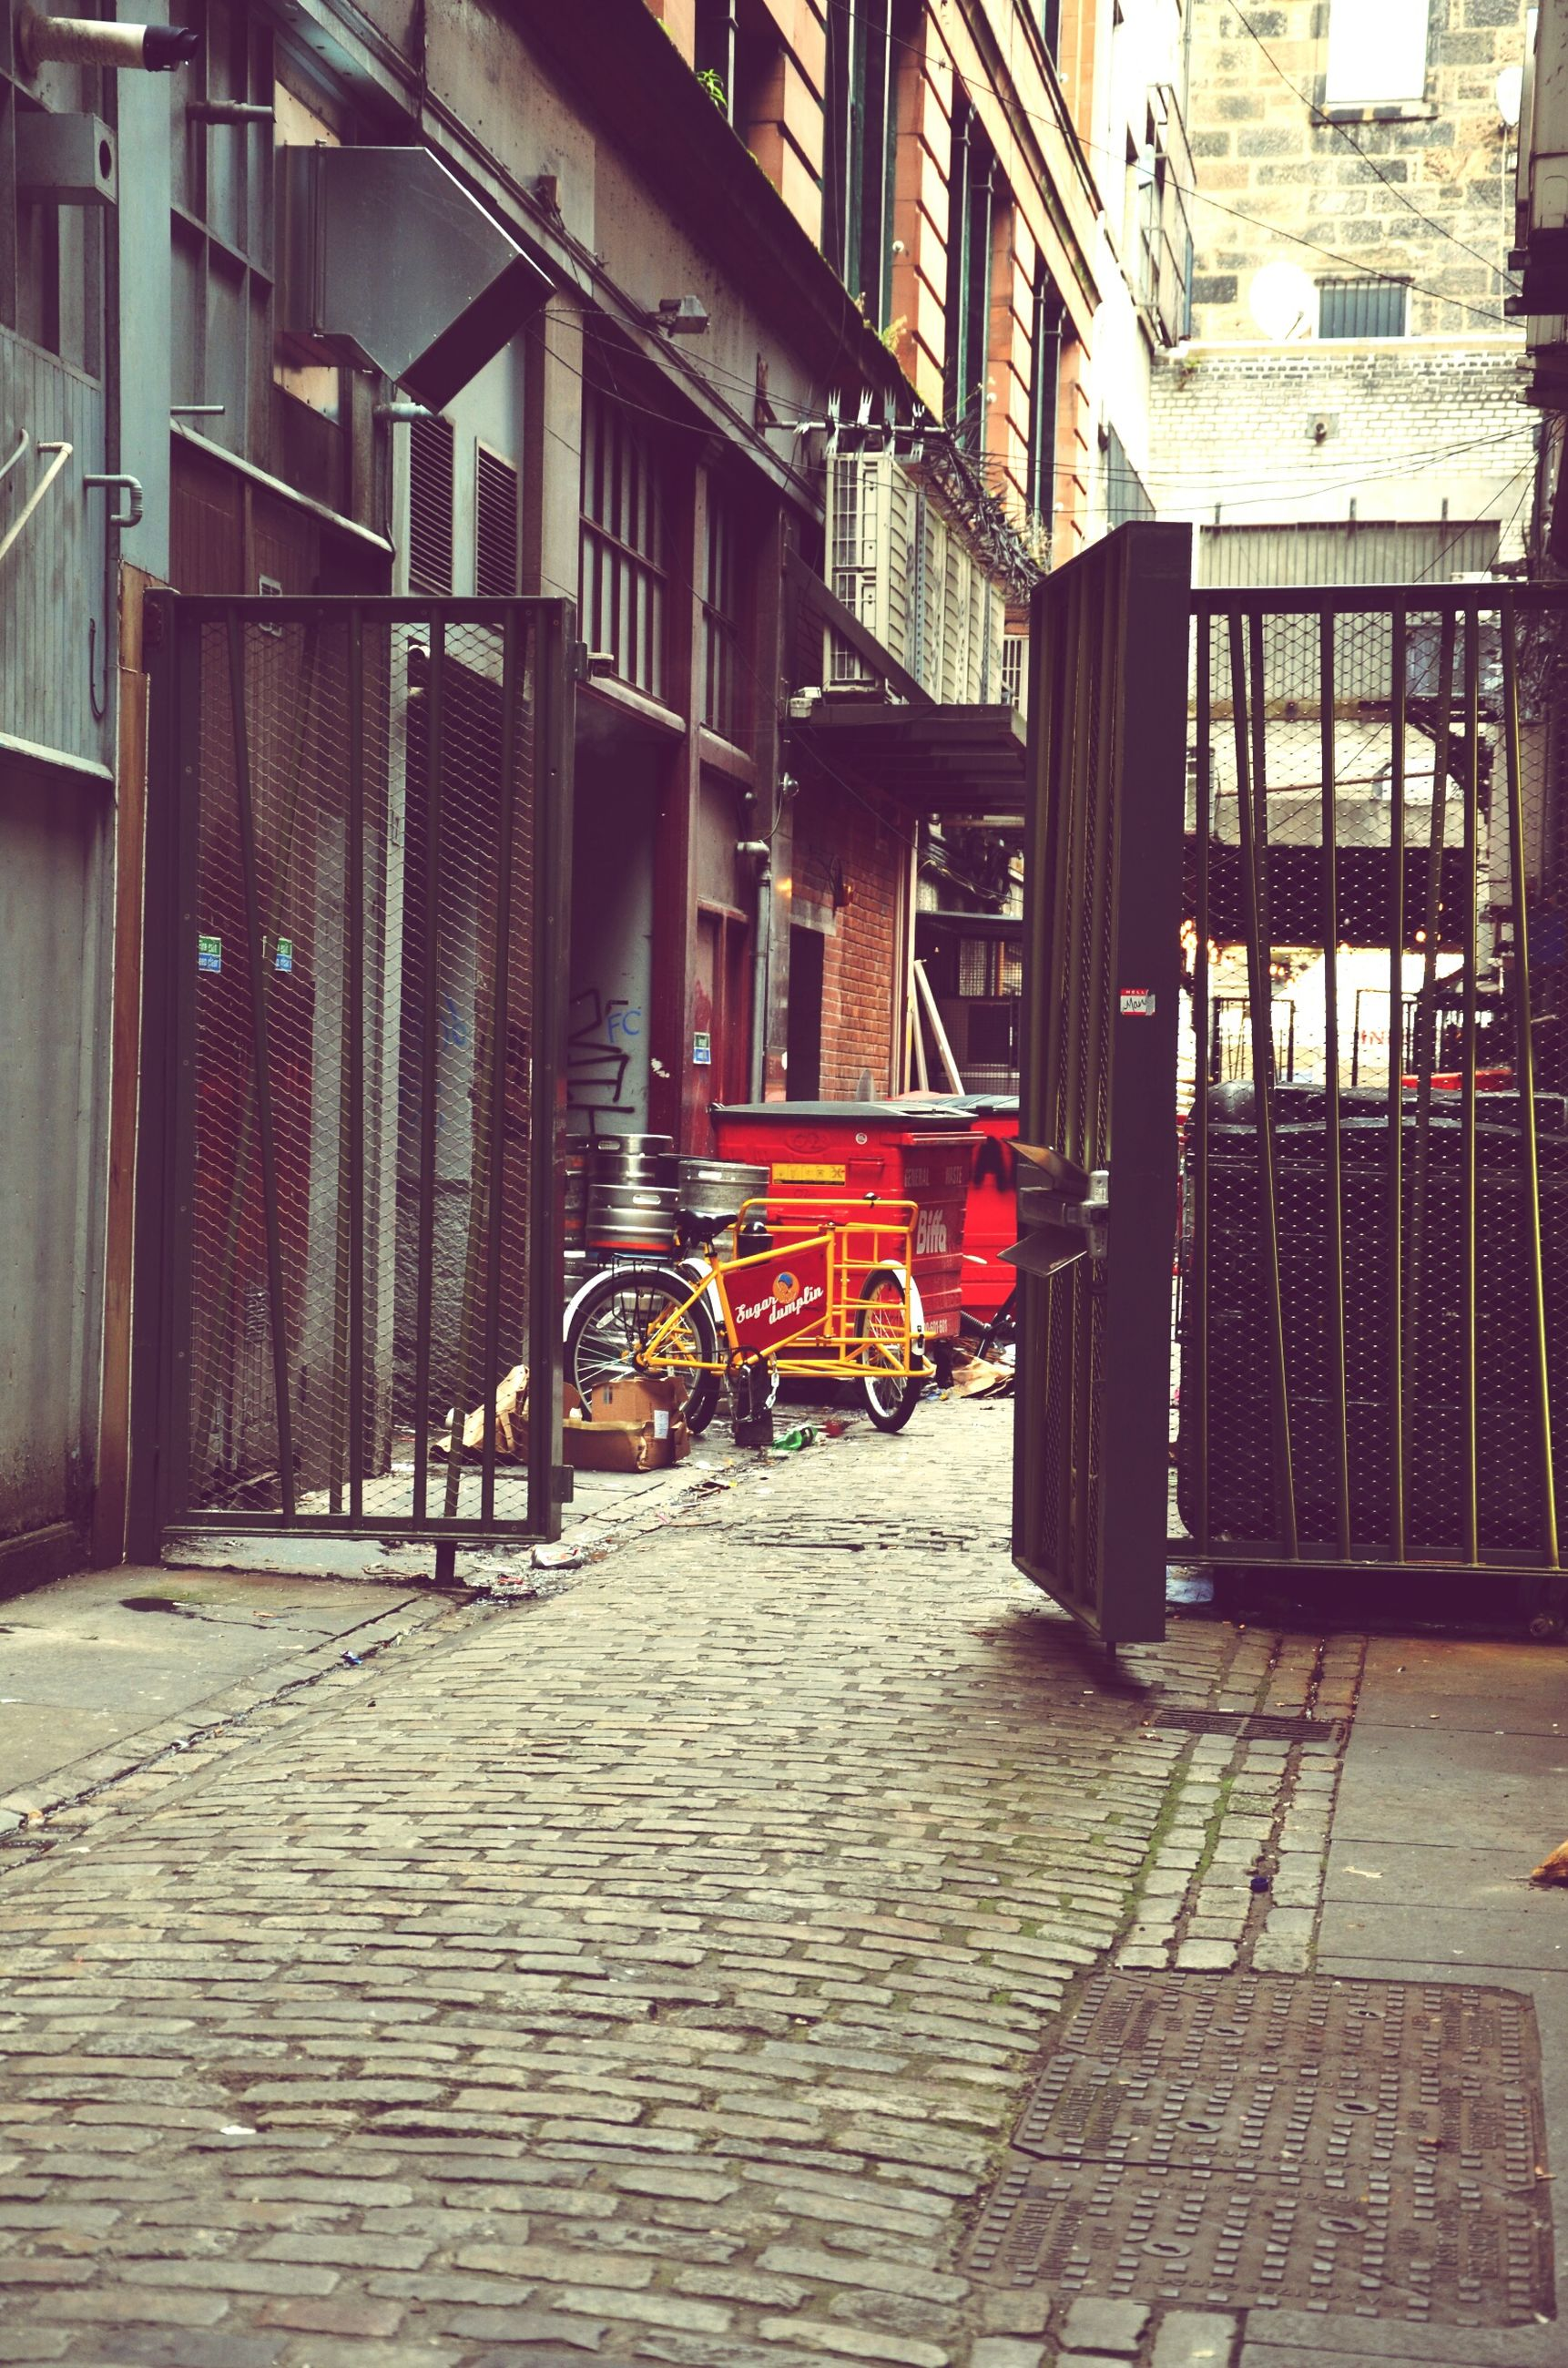 architecture, built structure, building exterior, transportation, bicycle, street, window, residential building, house, land vehicle, mode of transport, narrow, day, stationary, the way forward, outdoors, parked, cycle